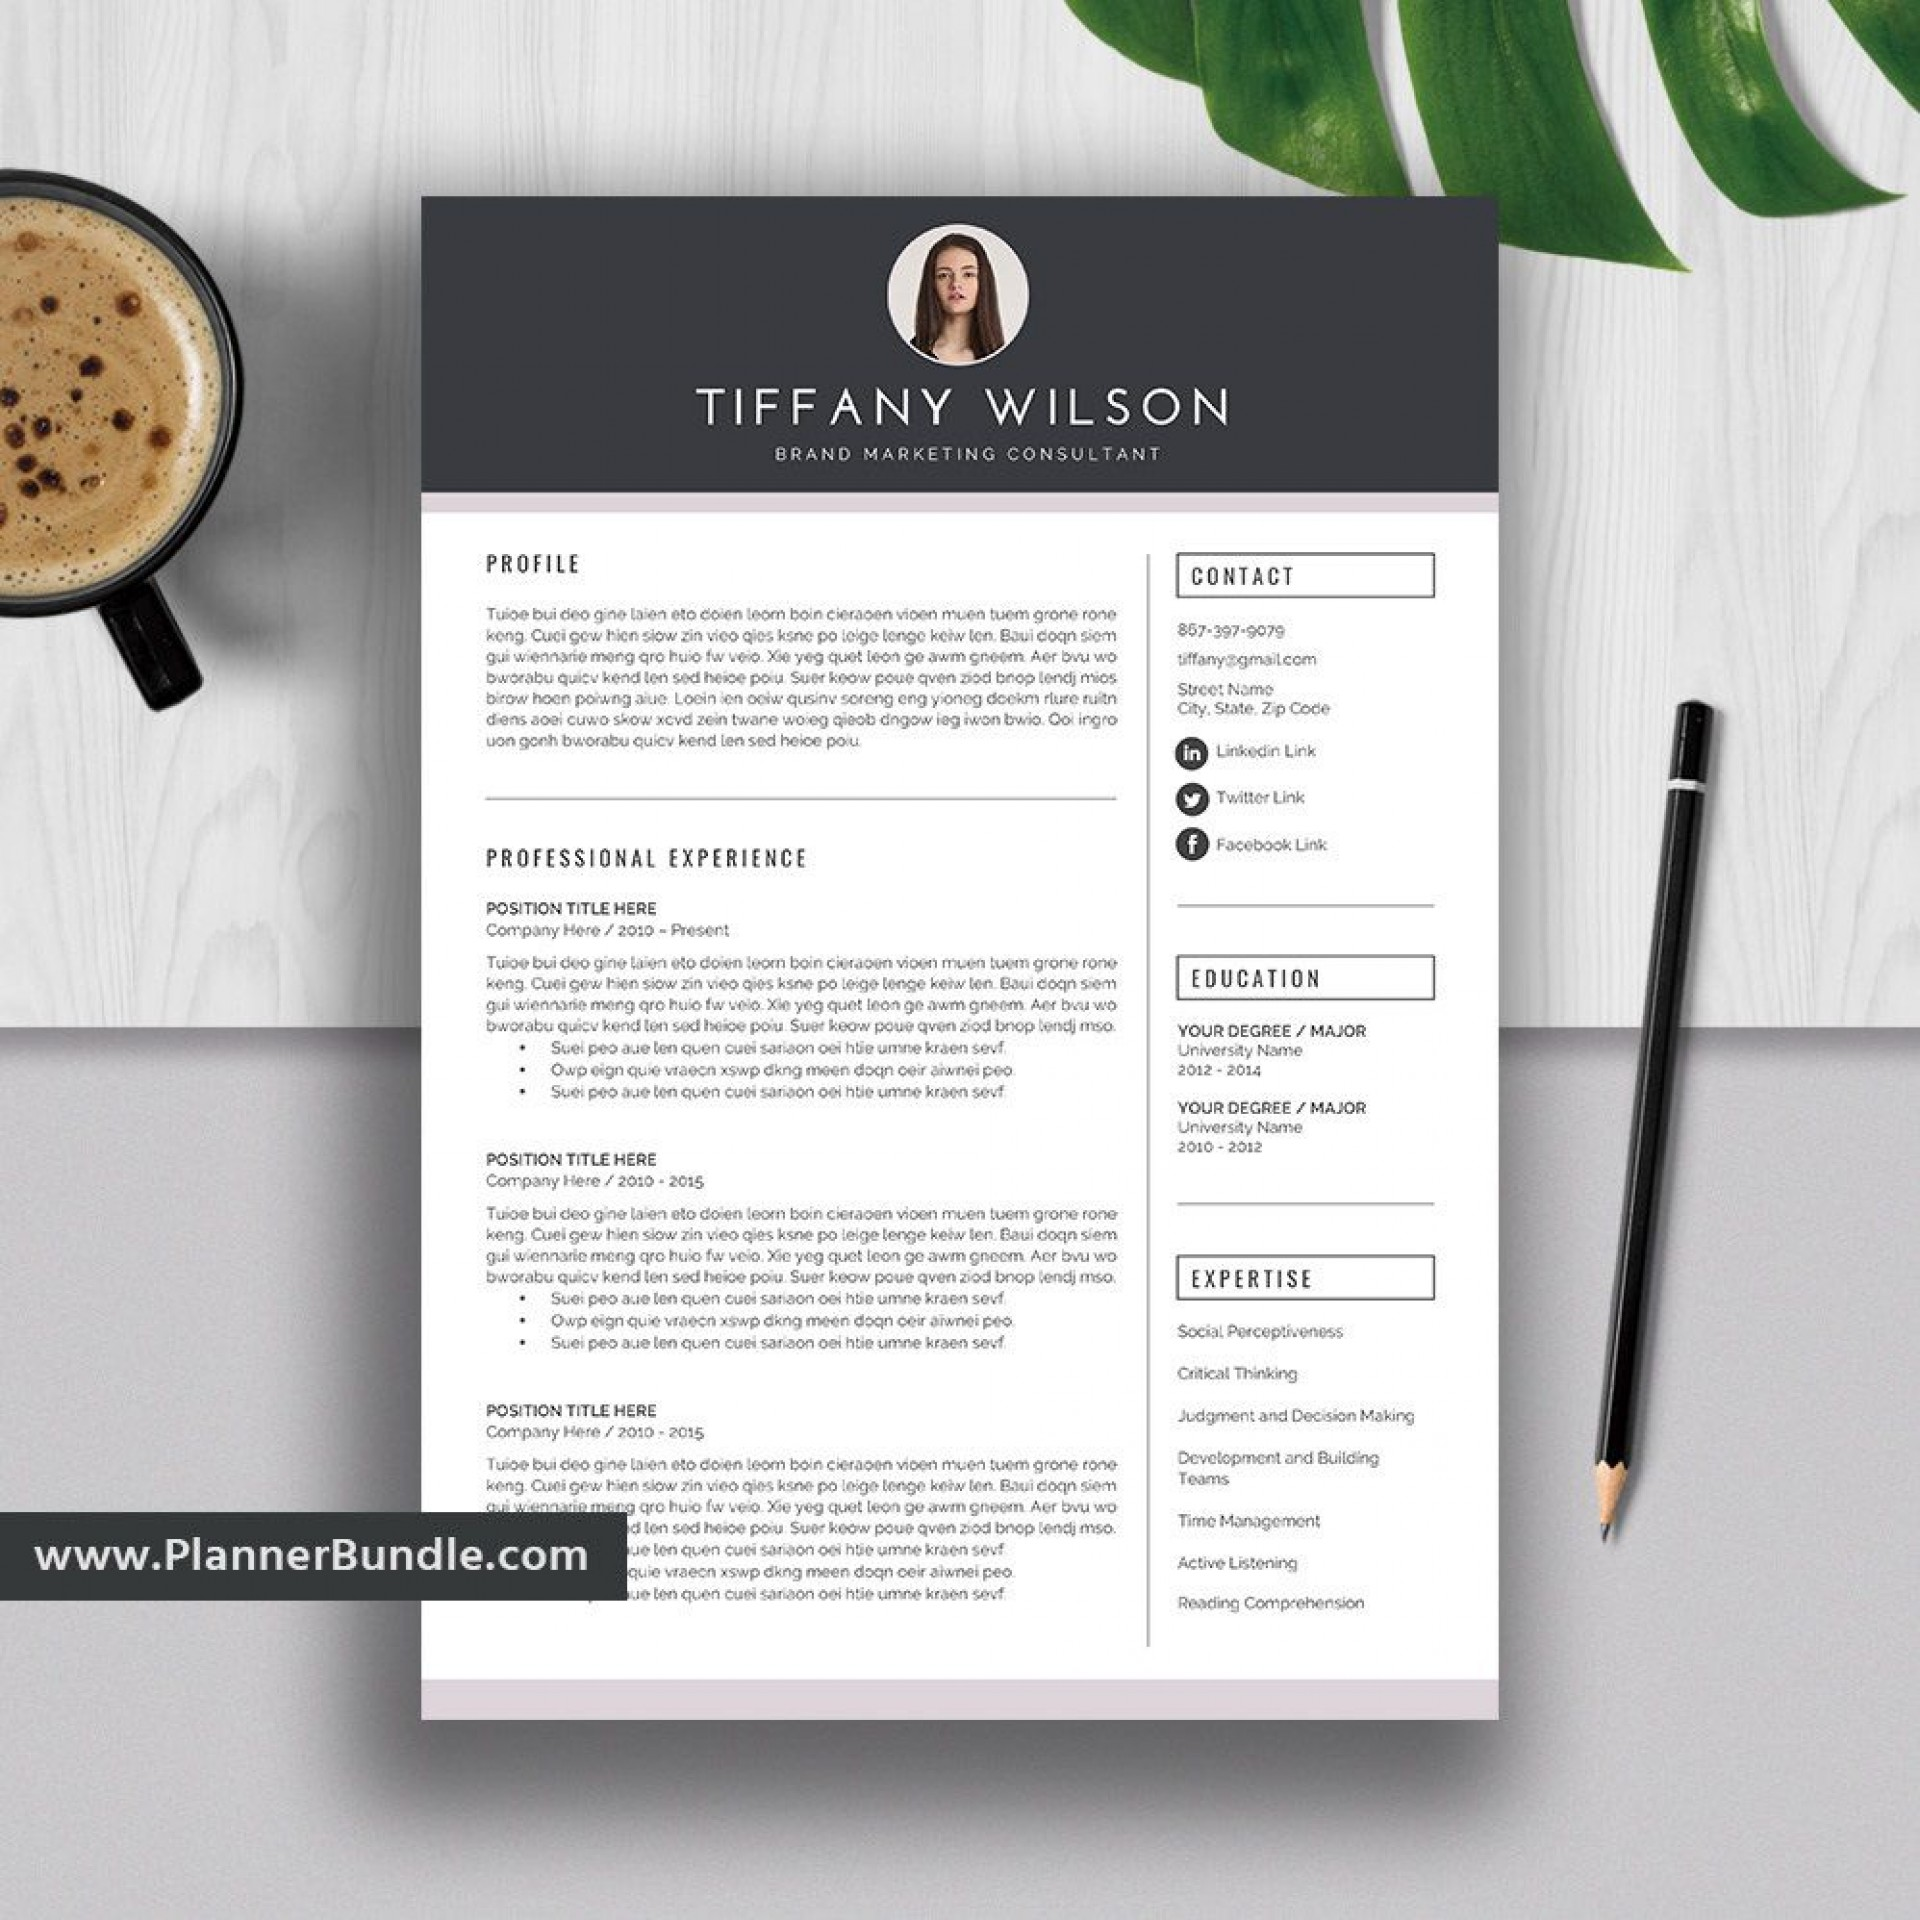 008 Incredible Graduate Student Resume Template Word High Definition 1920